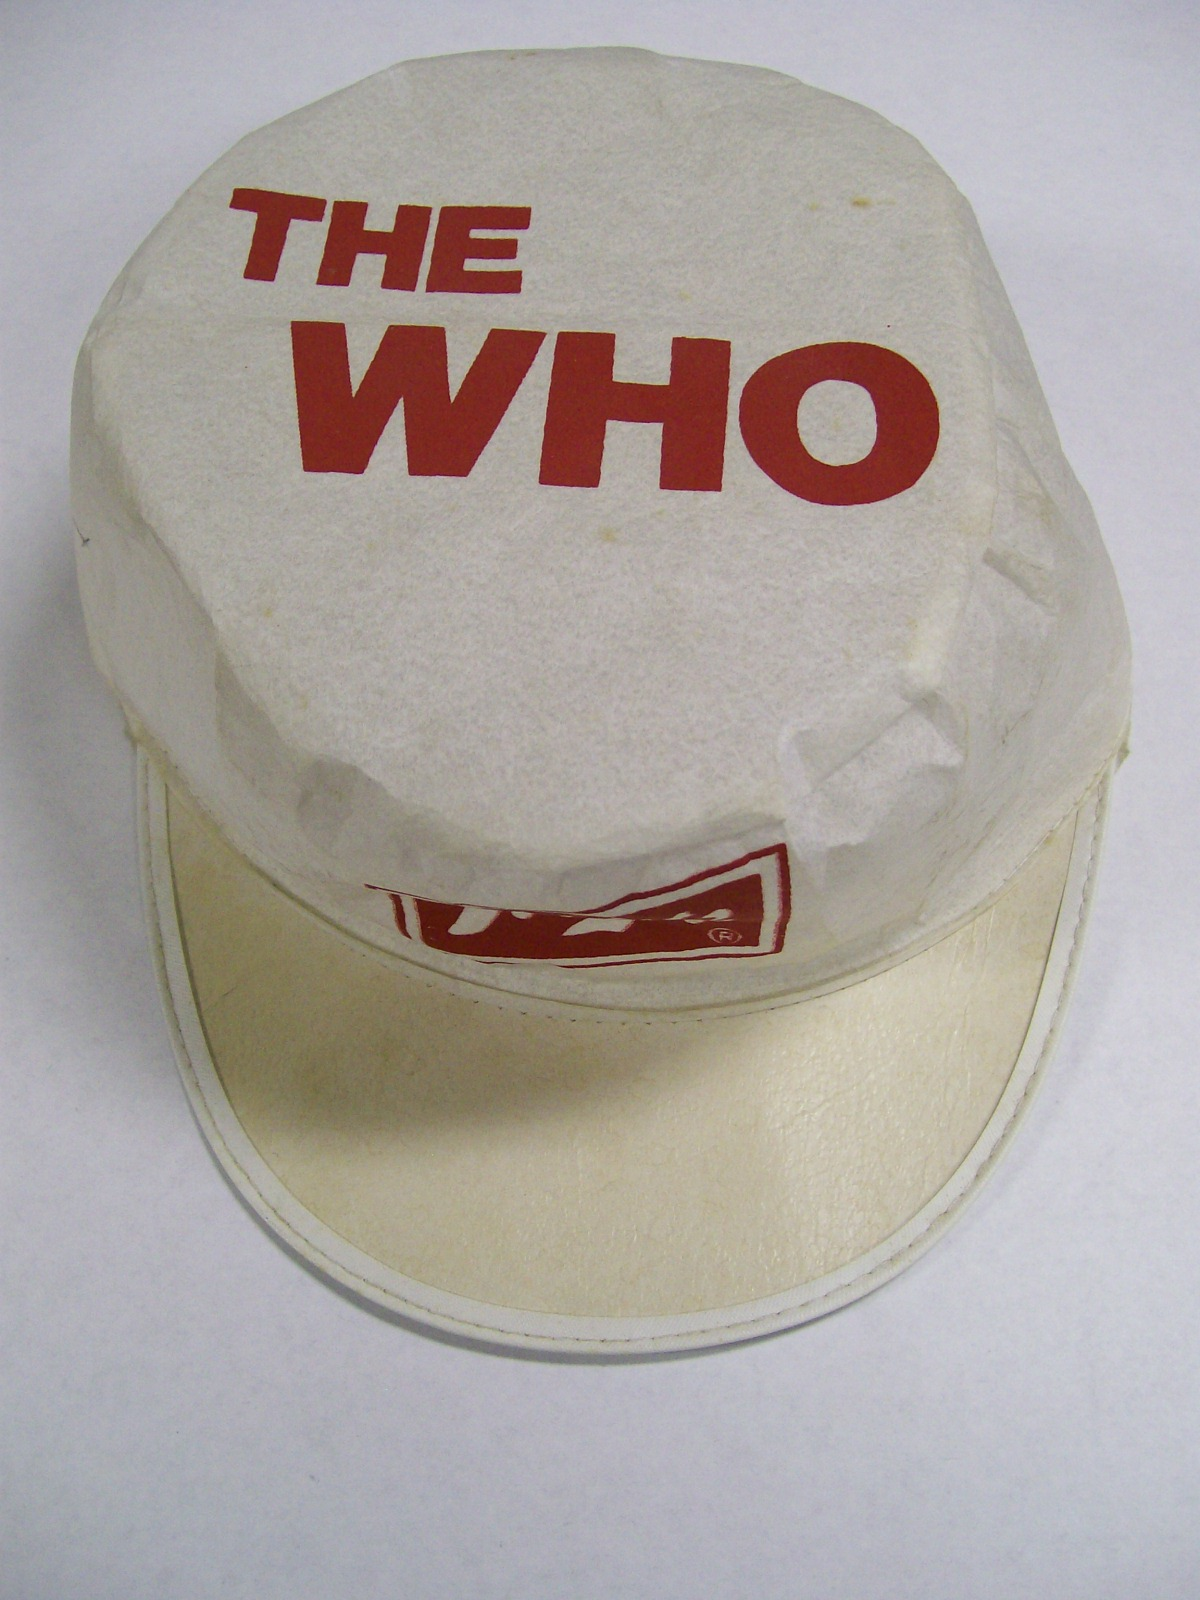 The Who officially licensed hat from Cincinnatti Concert